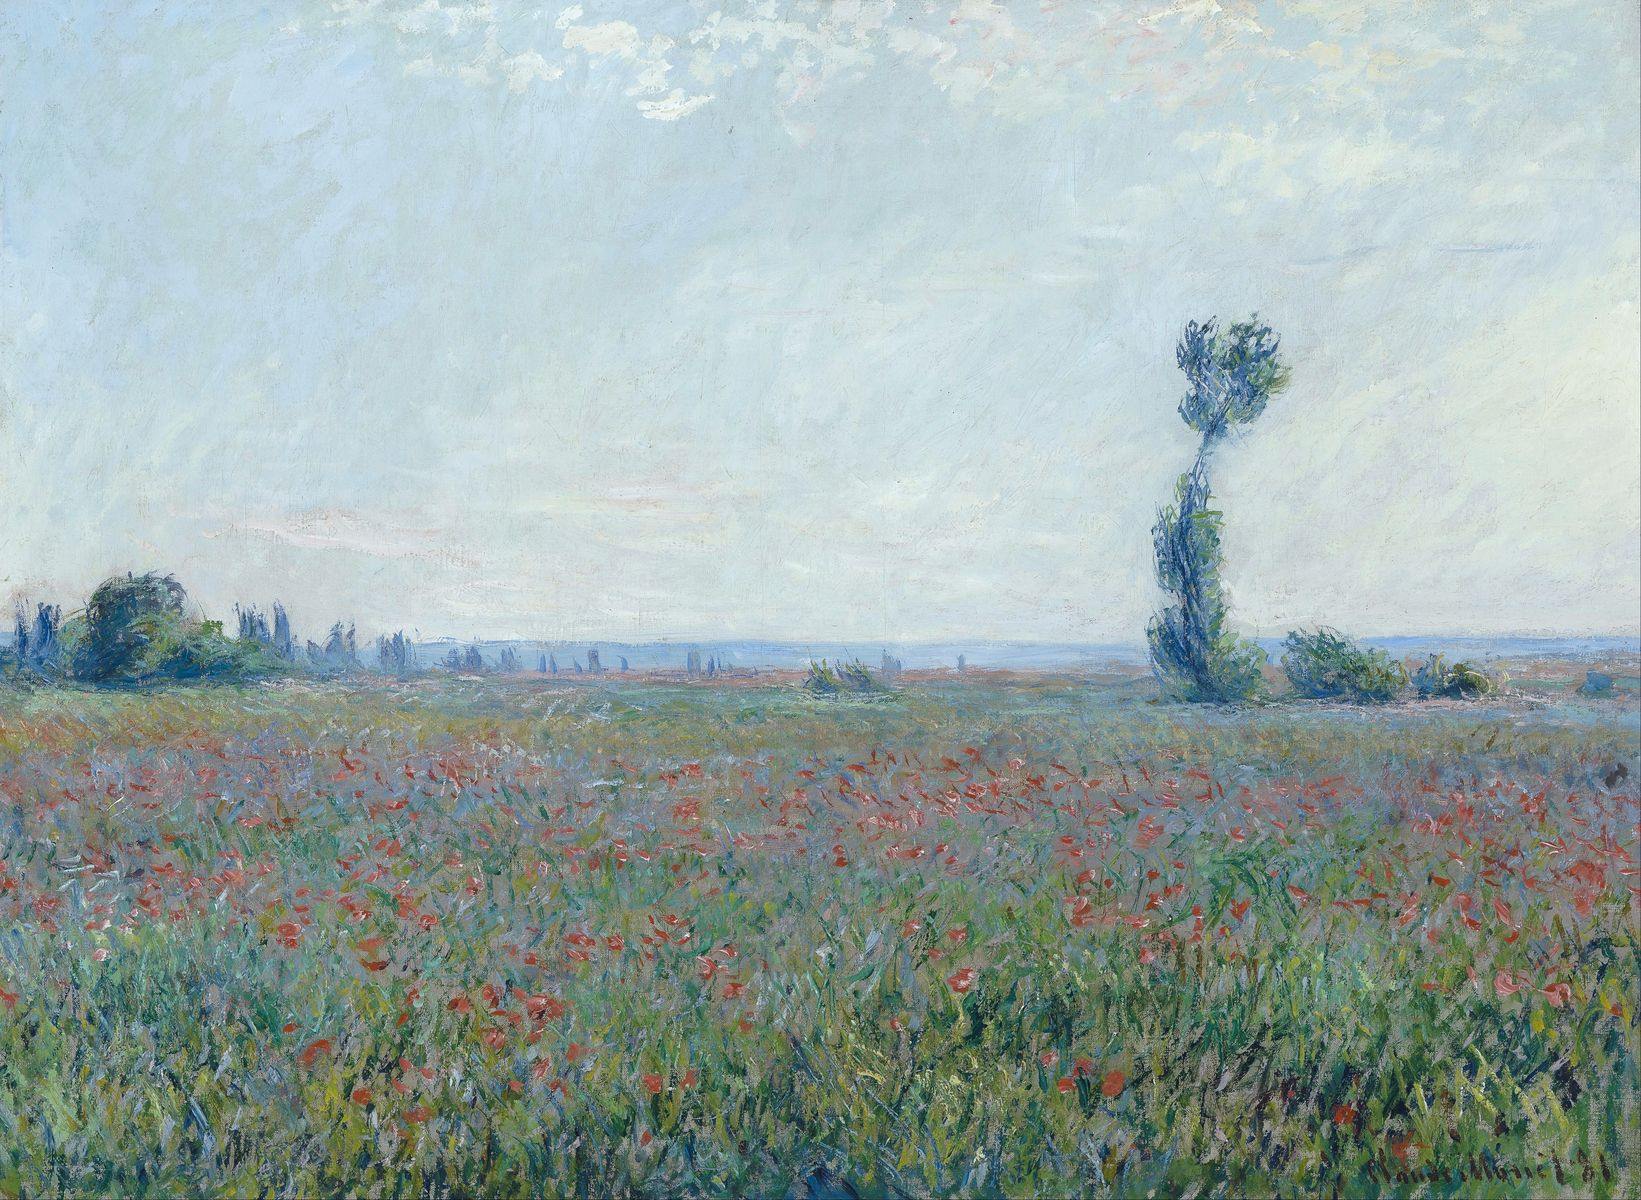 Monet: Poppy Field, 1881 \\o// Paint this at Inglis Academy - www.inglisacademy.com.